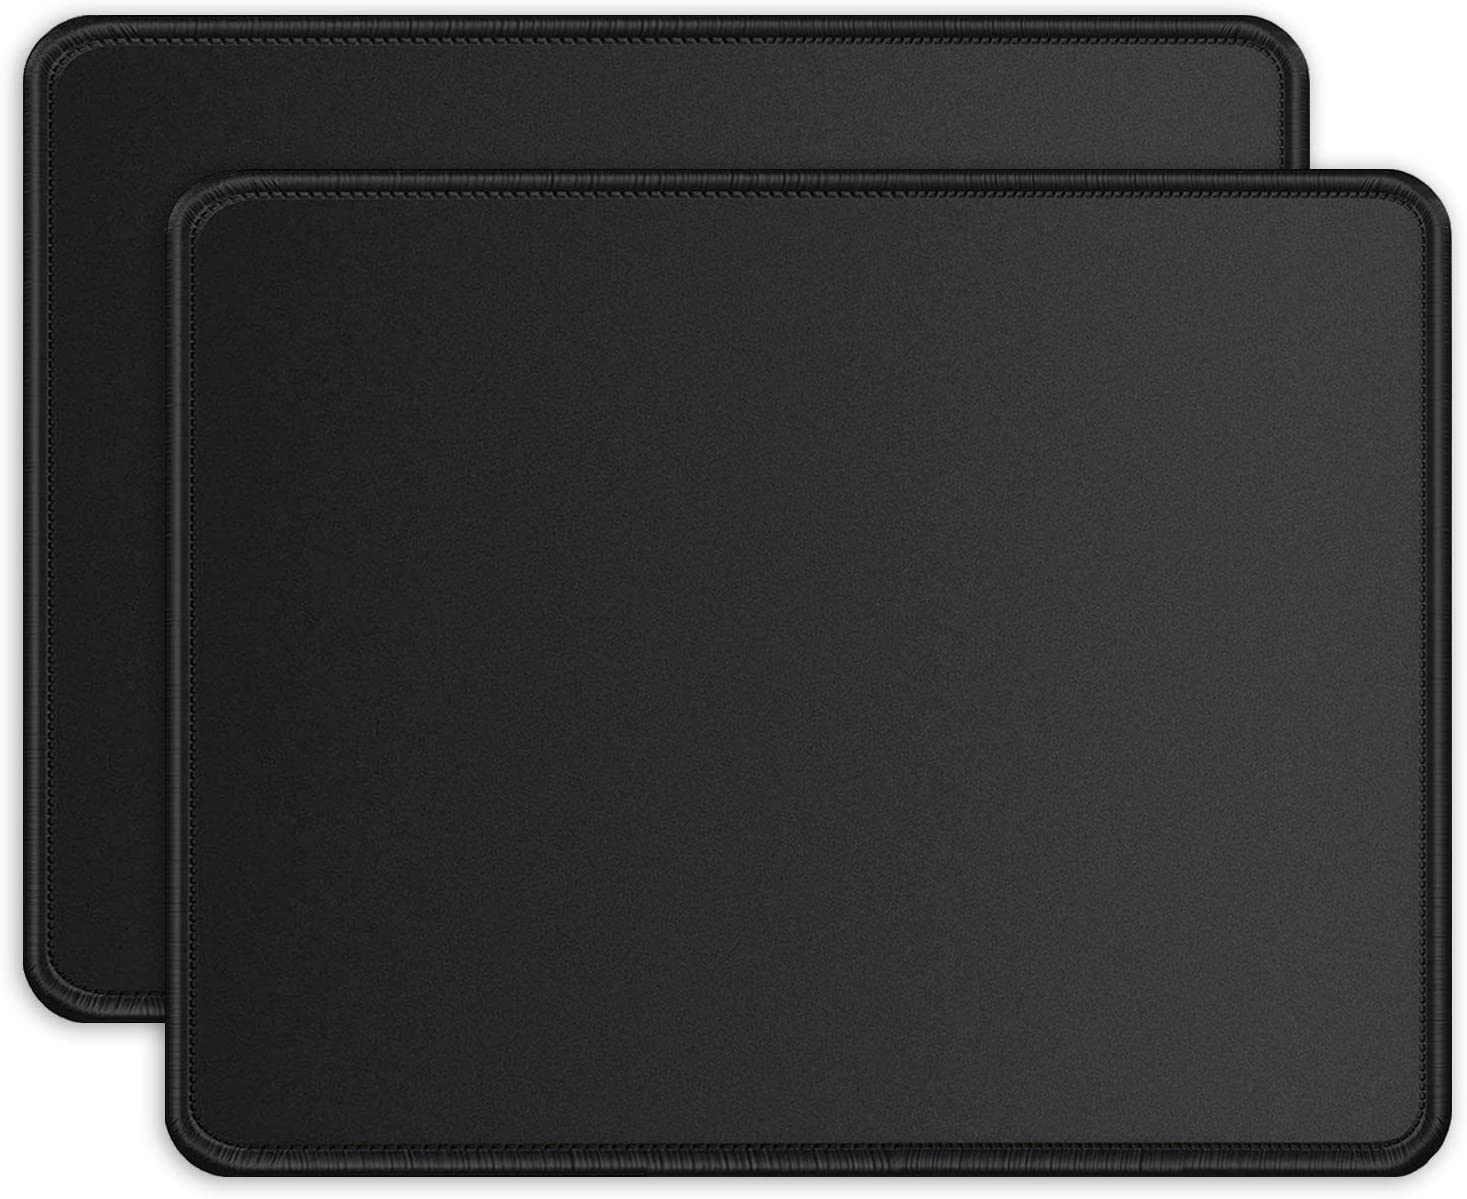 ITNRSIIET [2 Pack] Mouse Pad with Stitched Edge Premium-Textured Square Mouse Mat Washable Mousepads with Lycra Cloth Non-Slip Rubber Base Mousepad for Laptop Computer PC 10.2×8.3×0.12 inches Black